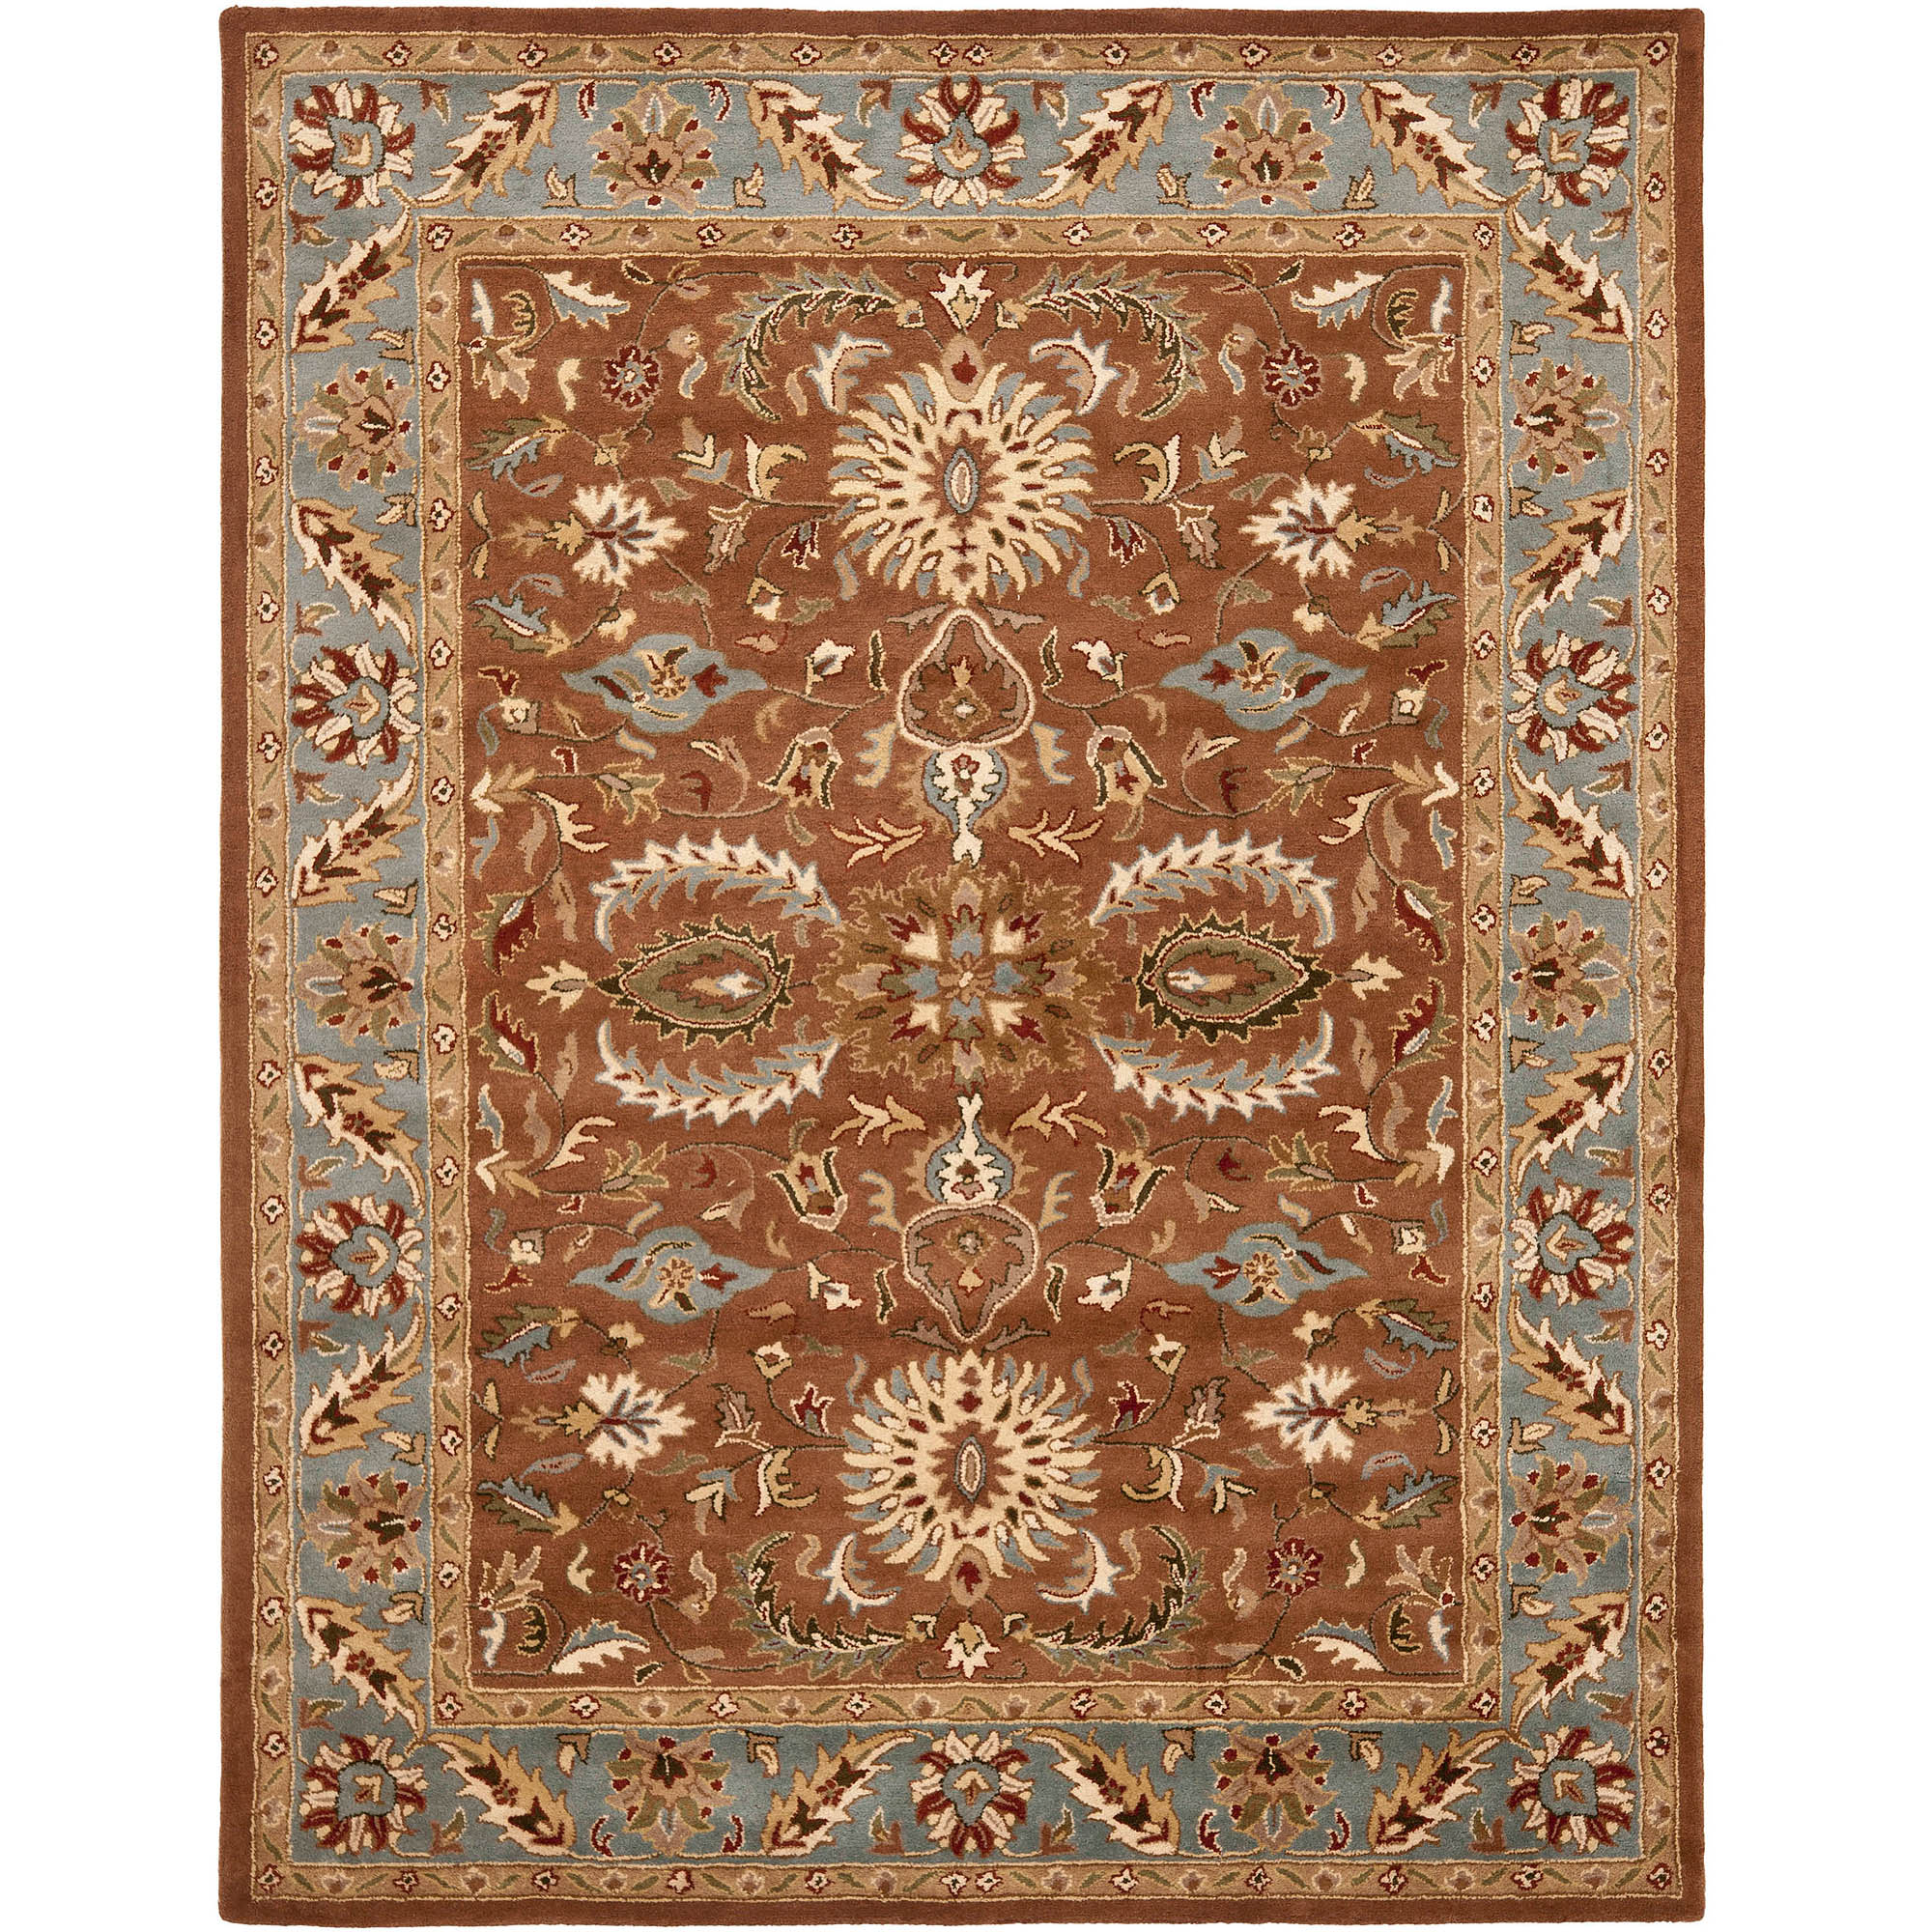 Safavieh Heritage Hand Tufted Wool Area Rug